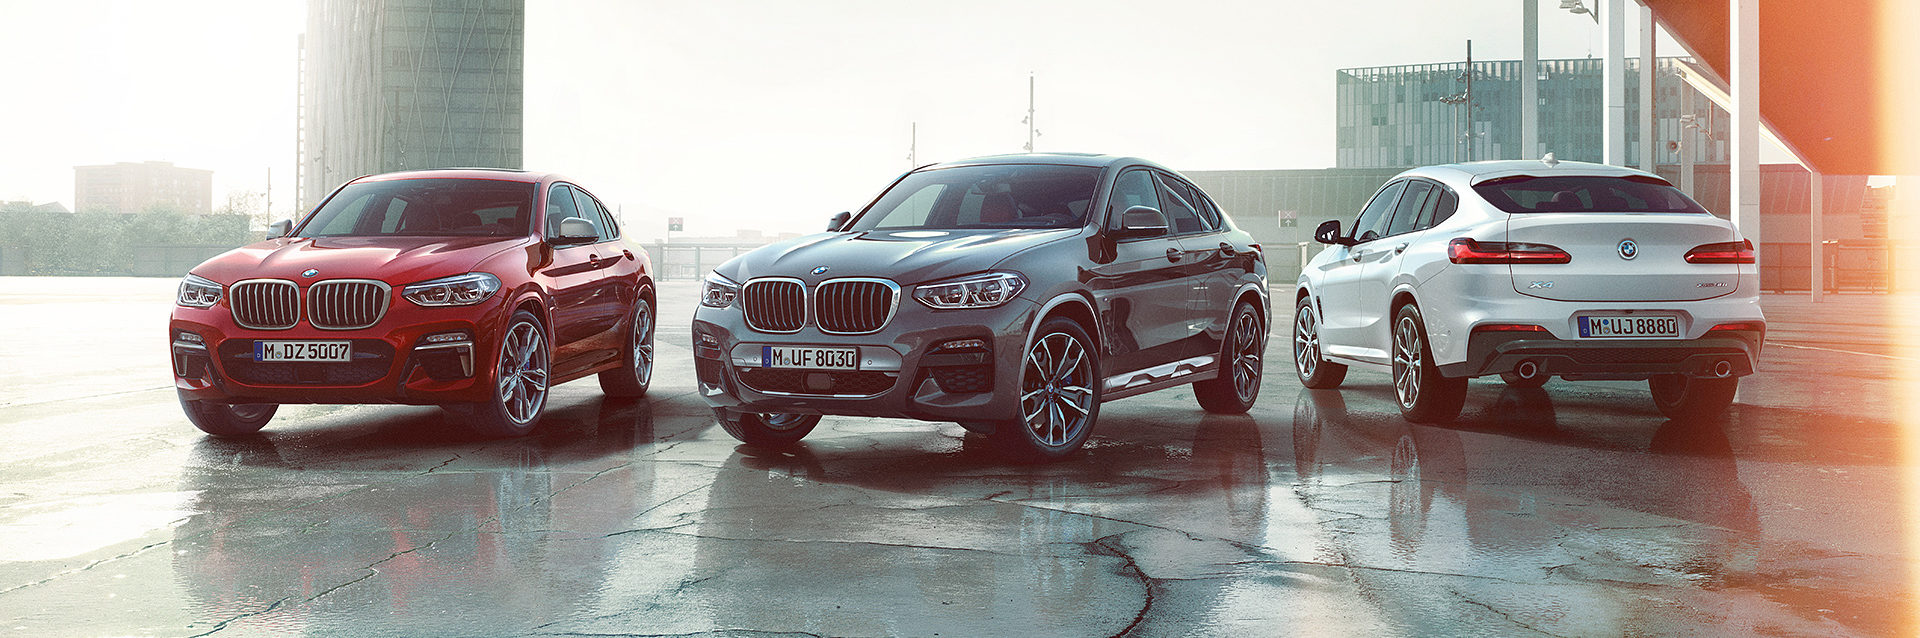 Lineup of three BMW X4s in red, grey and silver, parked staggered in city